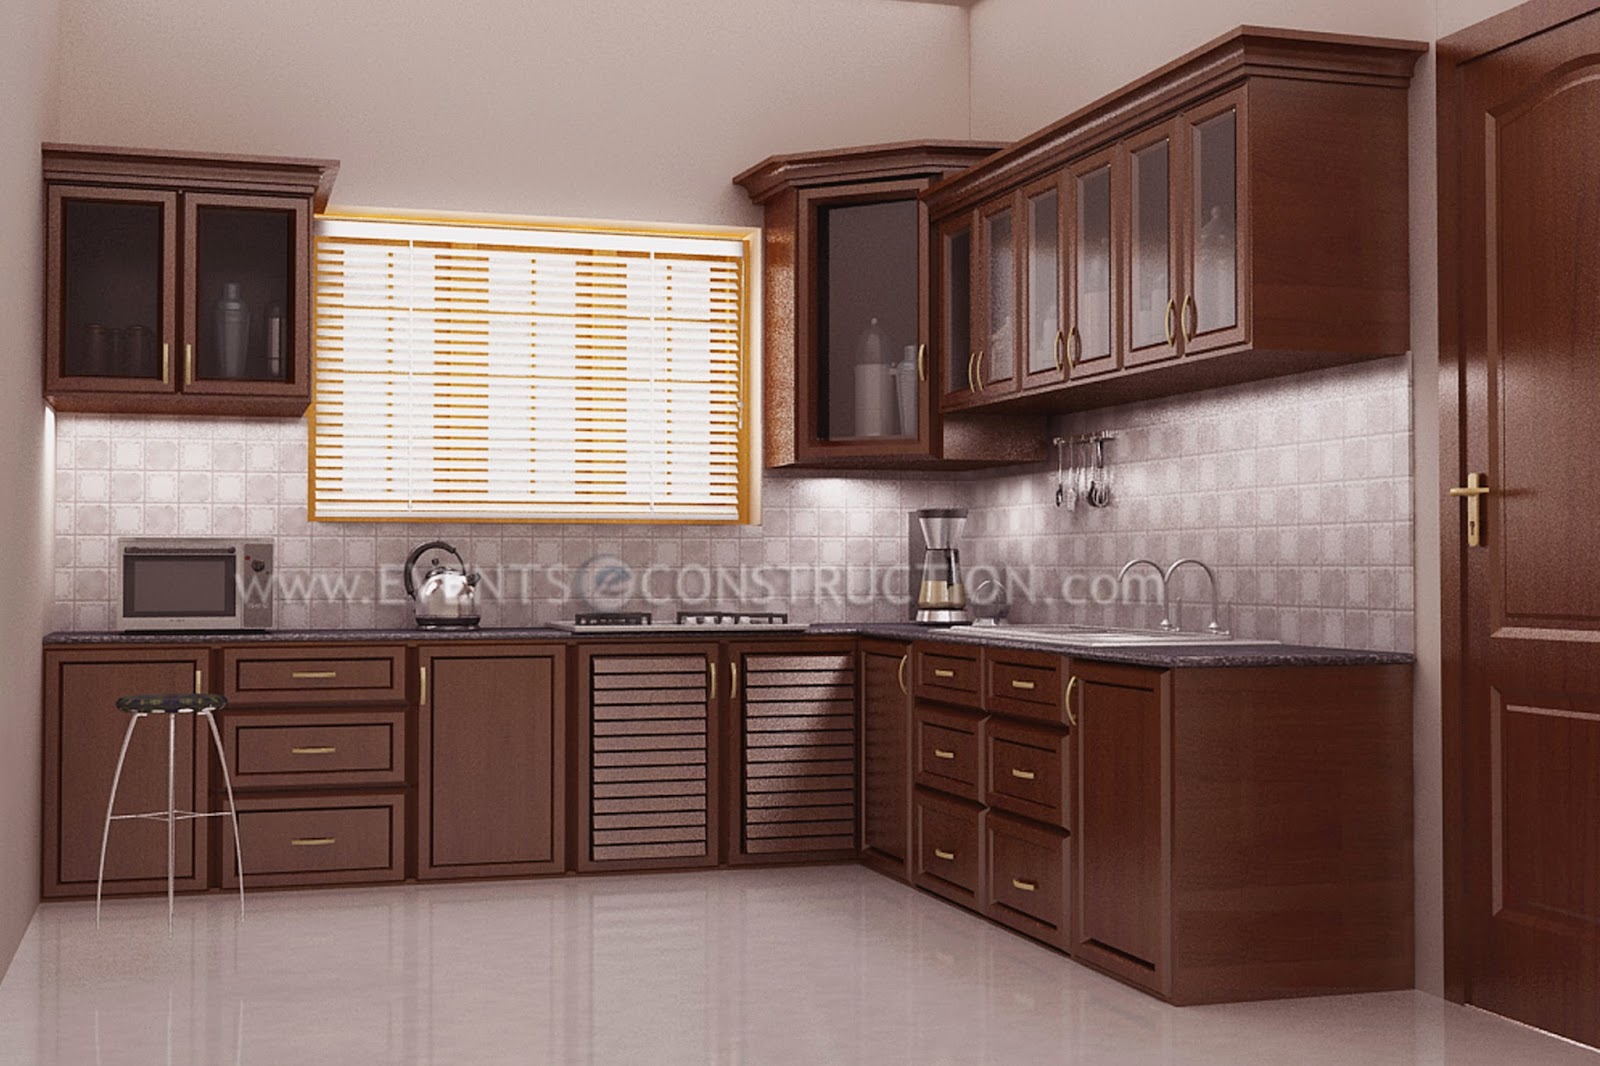 kitchen cabinet design kerala evens construction pvt ltd kitchen design with wooden 636